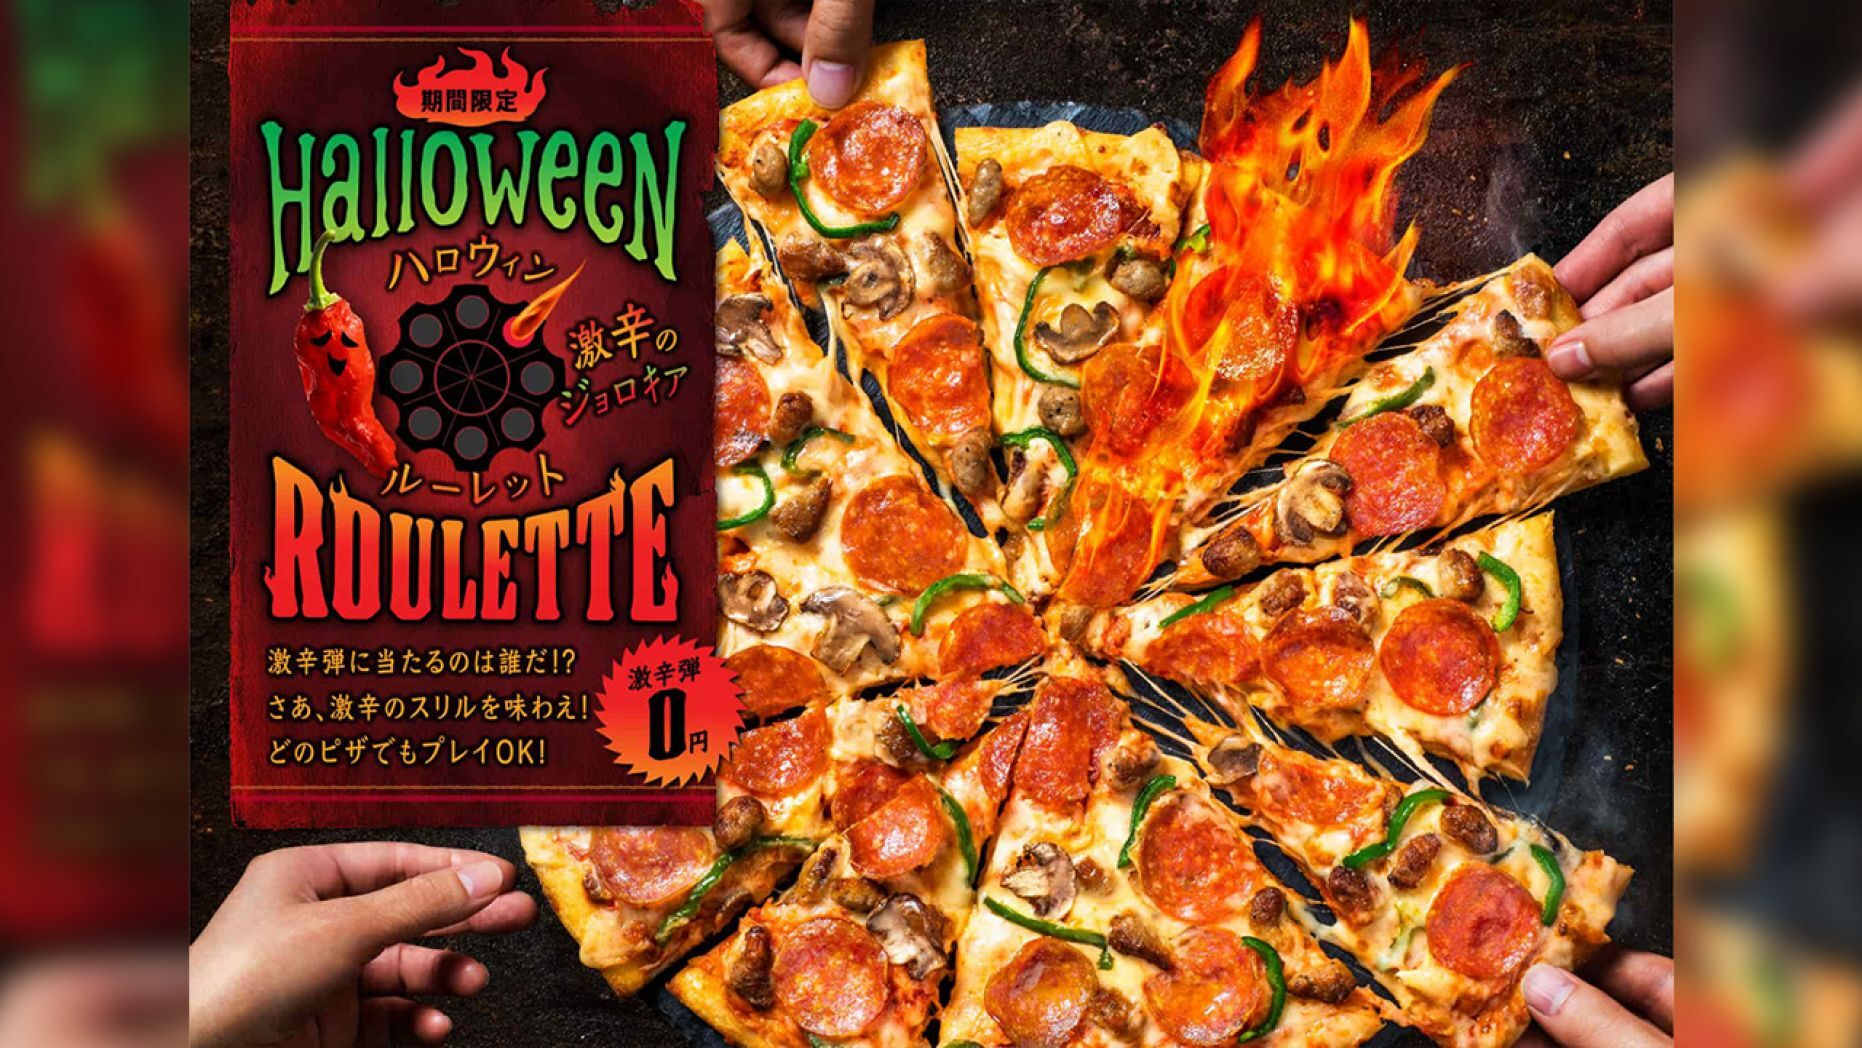 Is Dominos Open On Christmas.Domino S Japan Selling Halloween Roulette Pizza Which Has